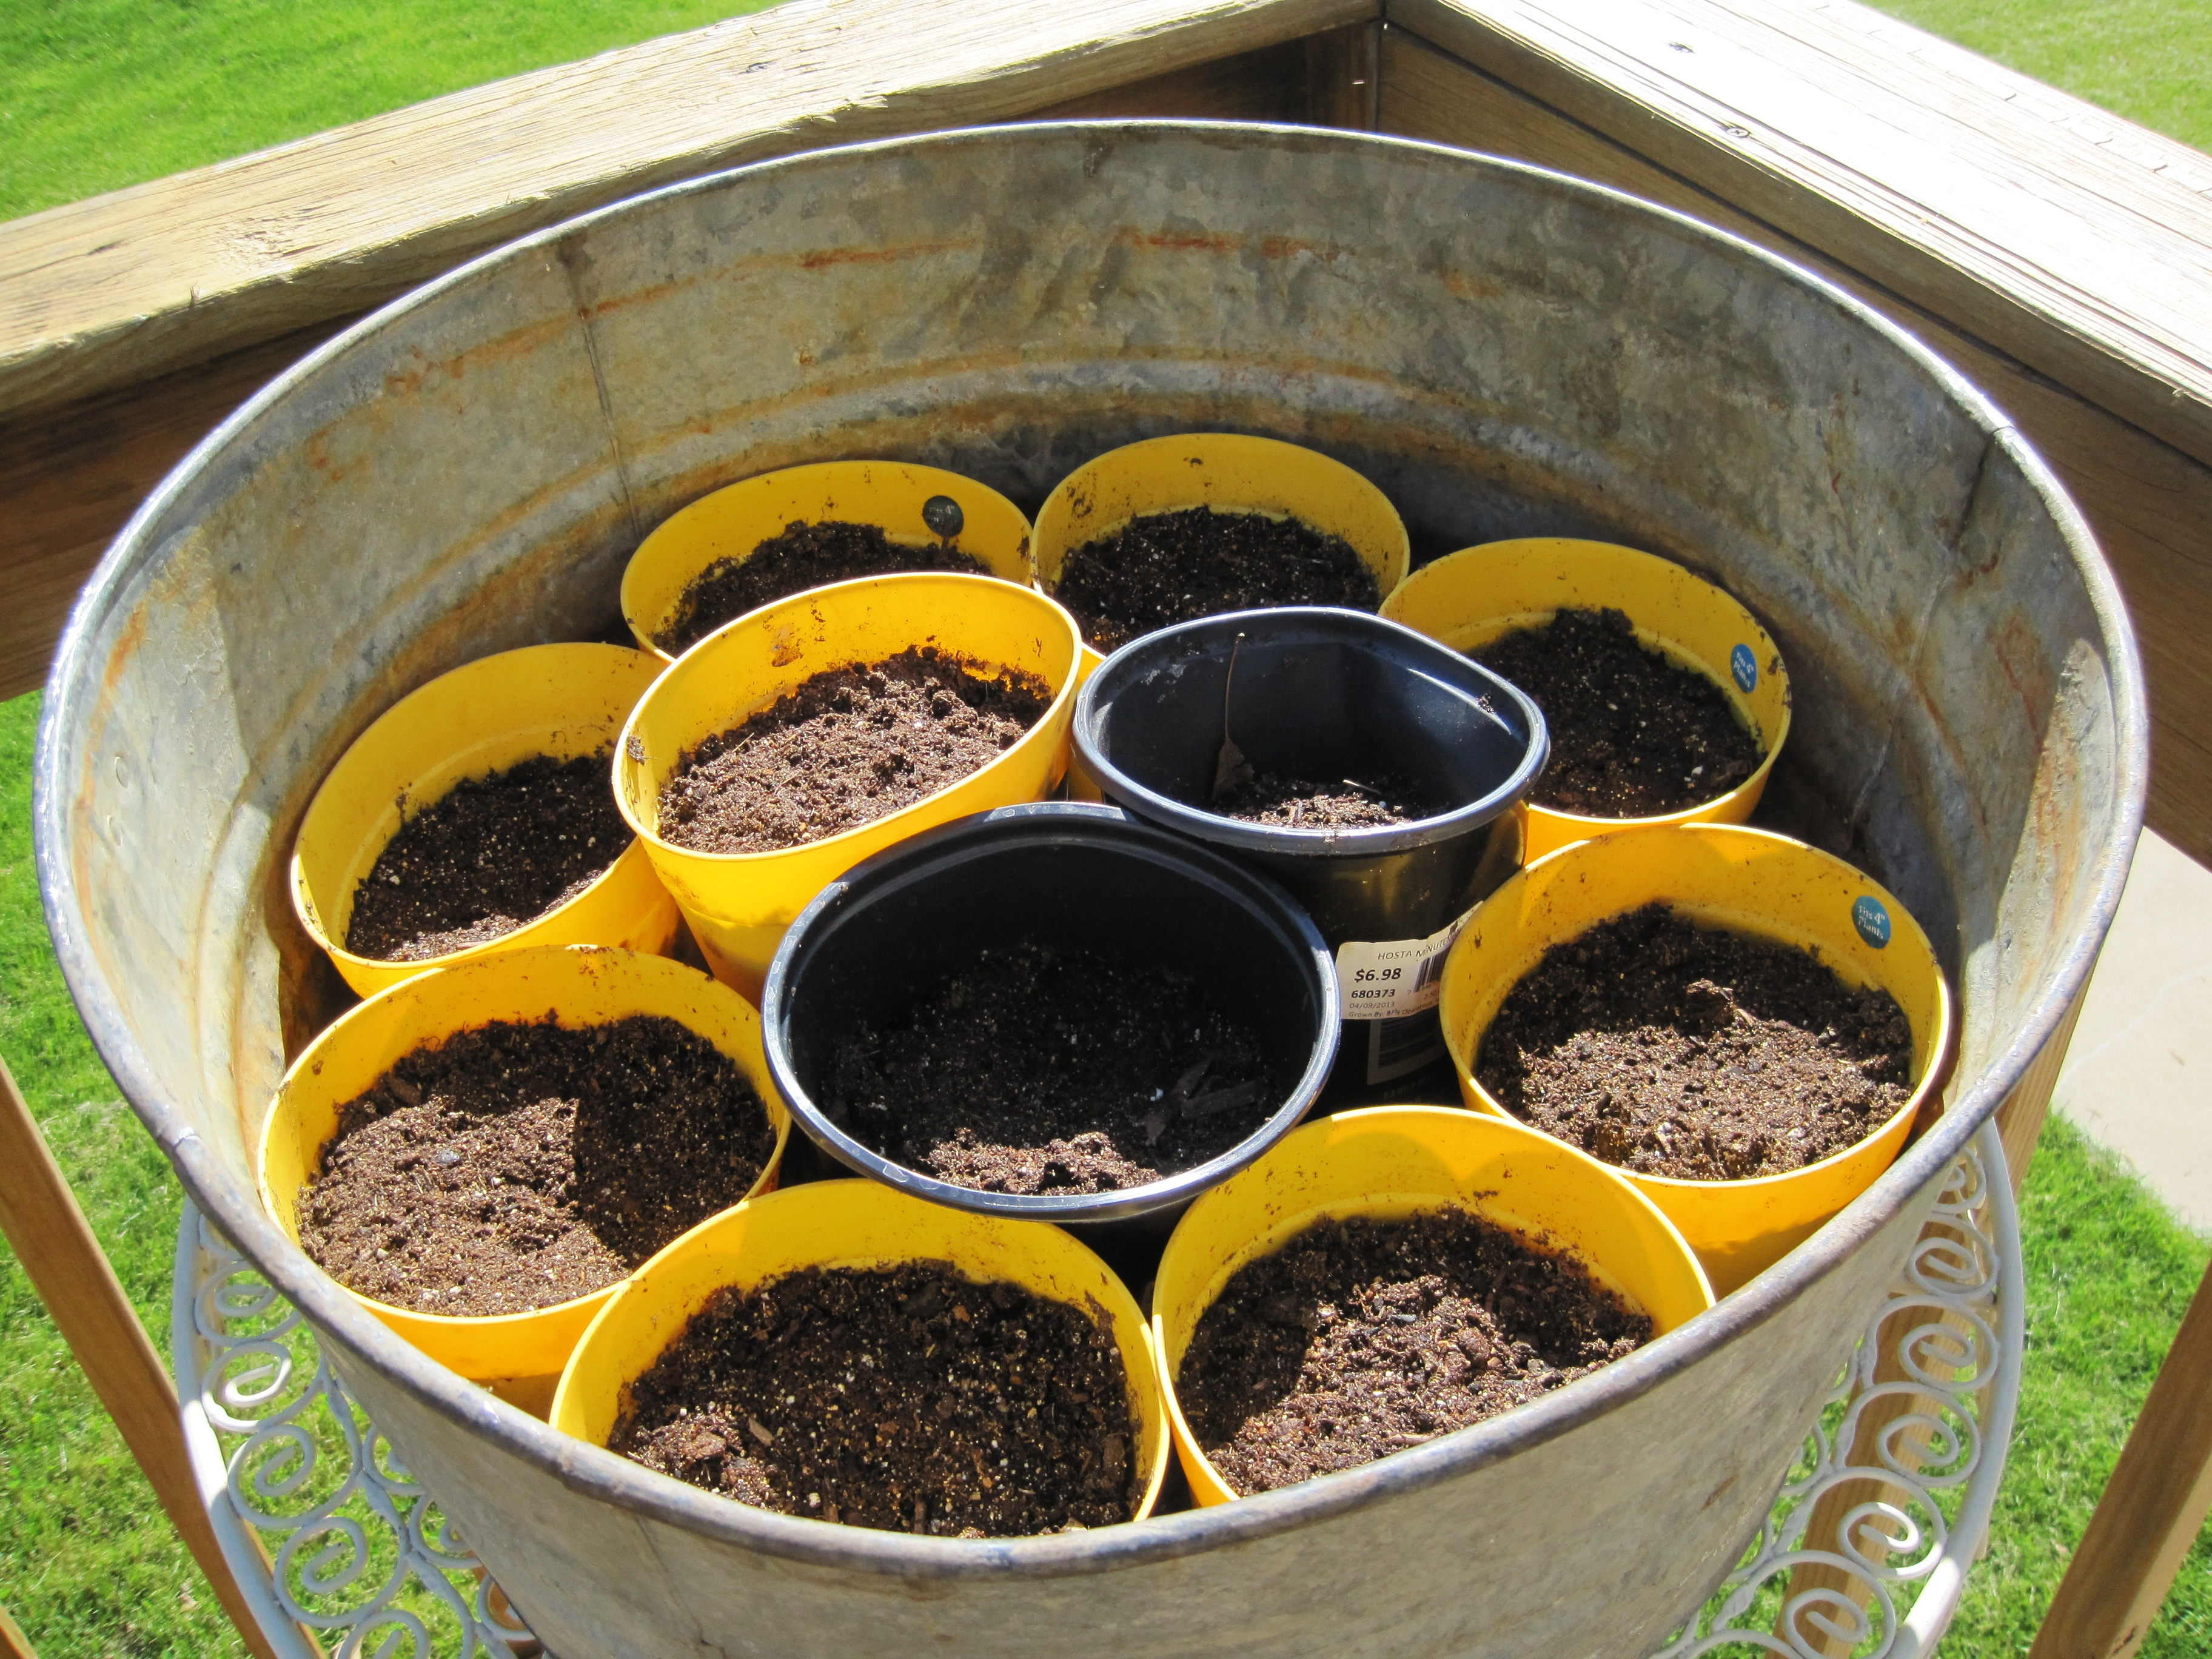 Planted Spinach Seeds